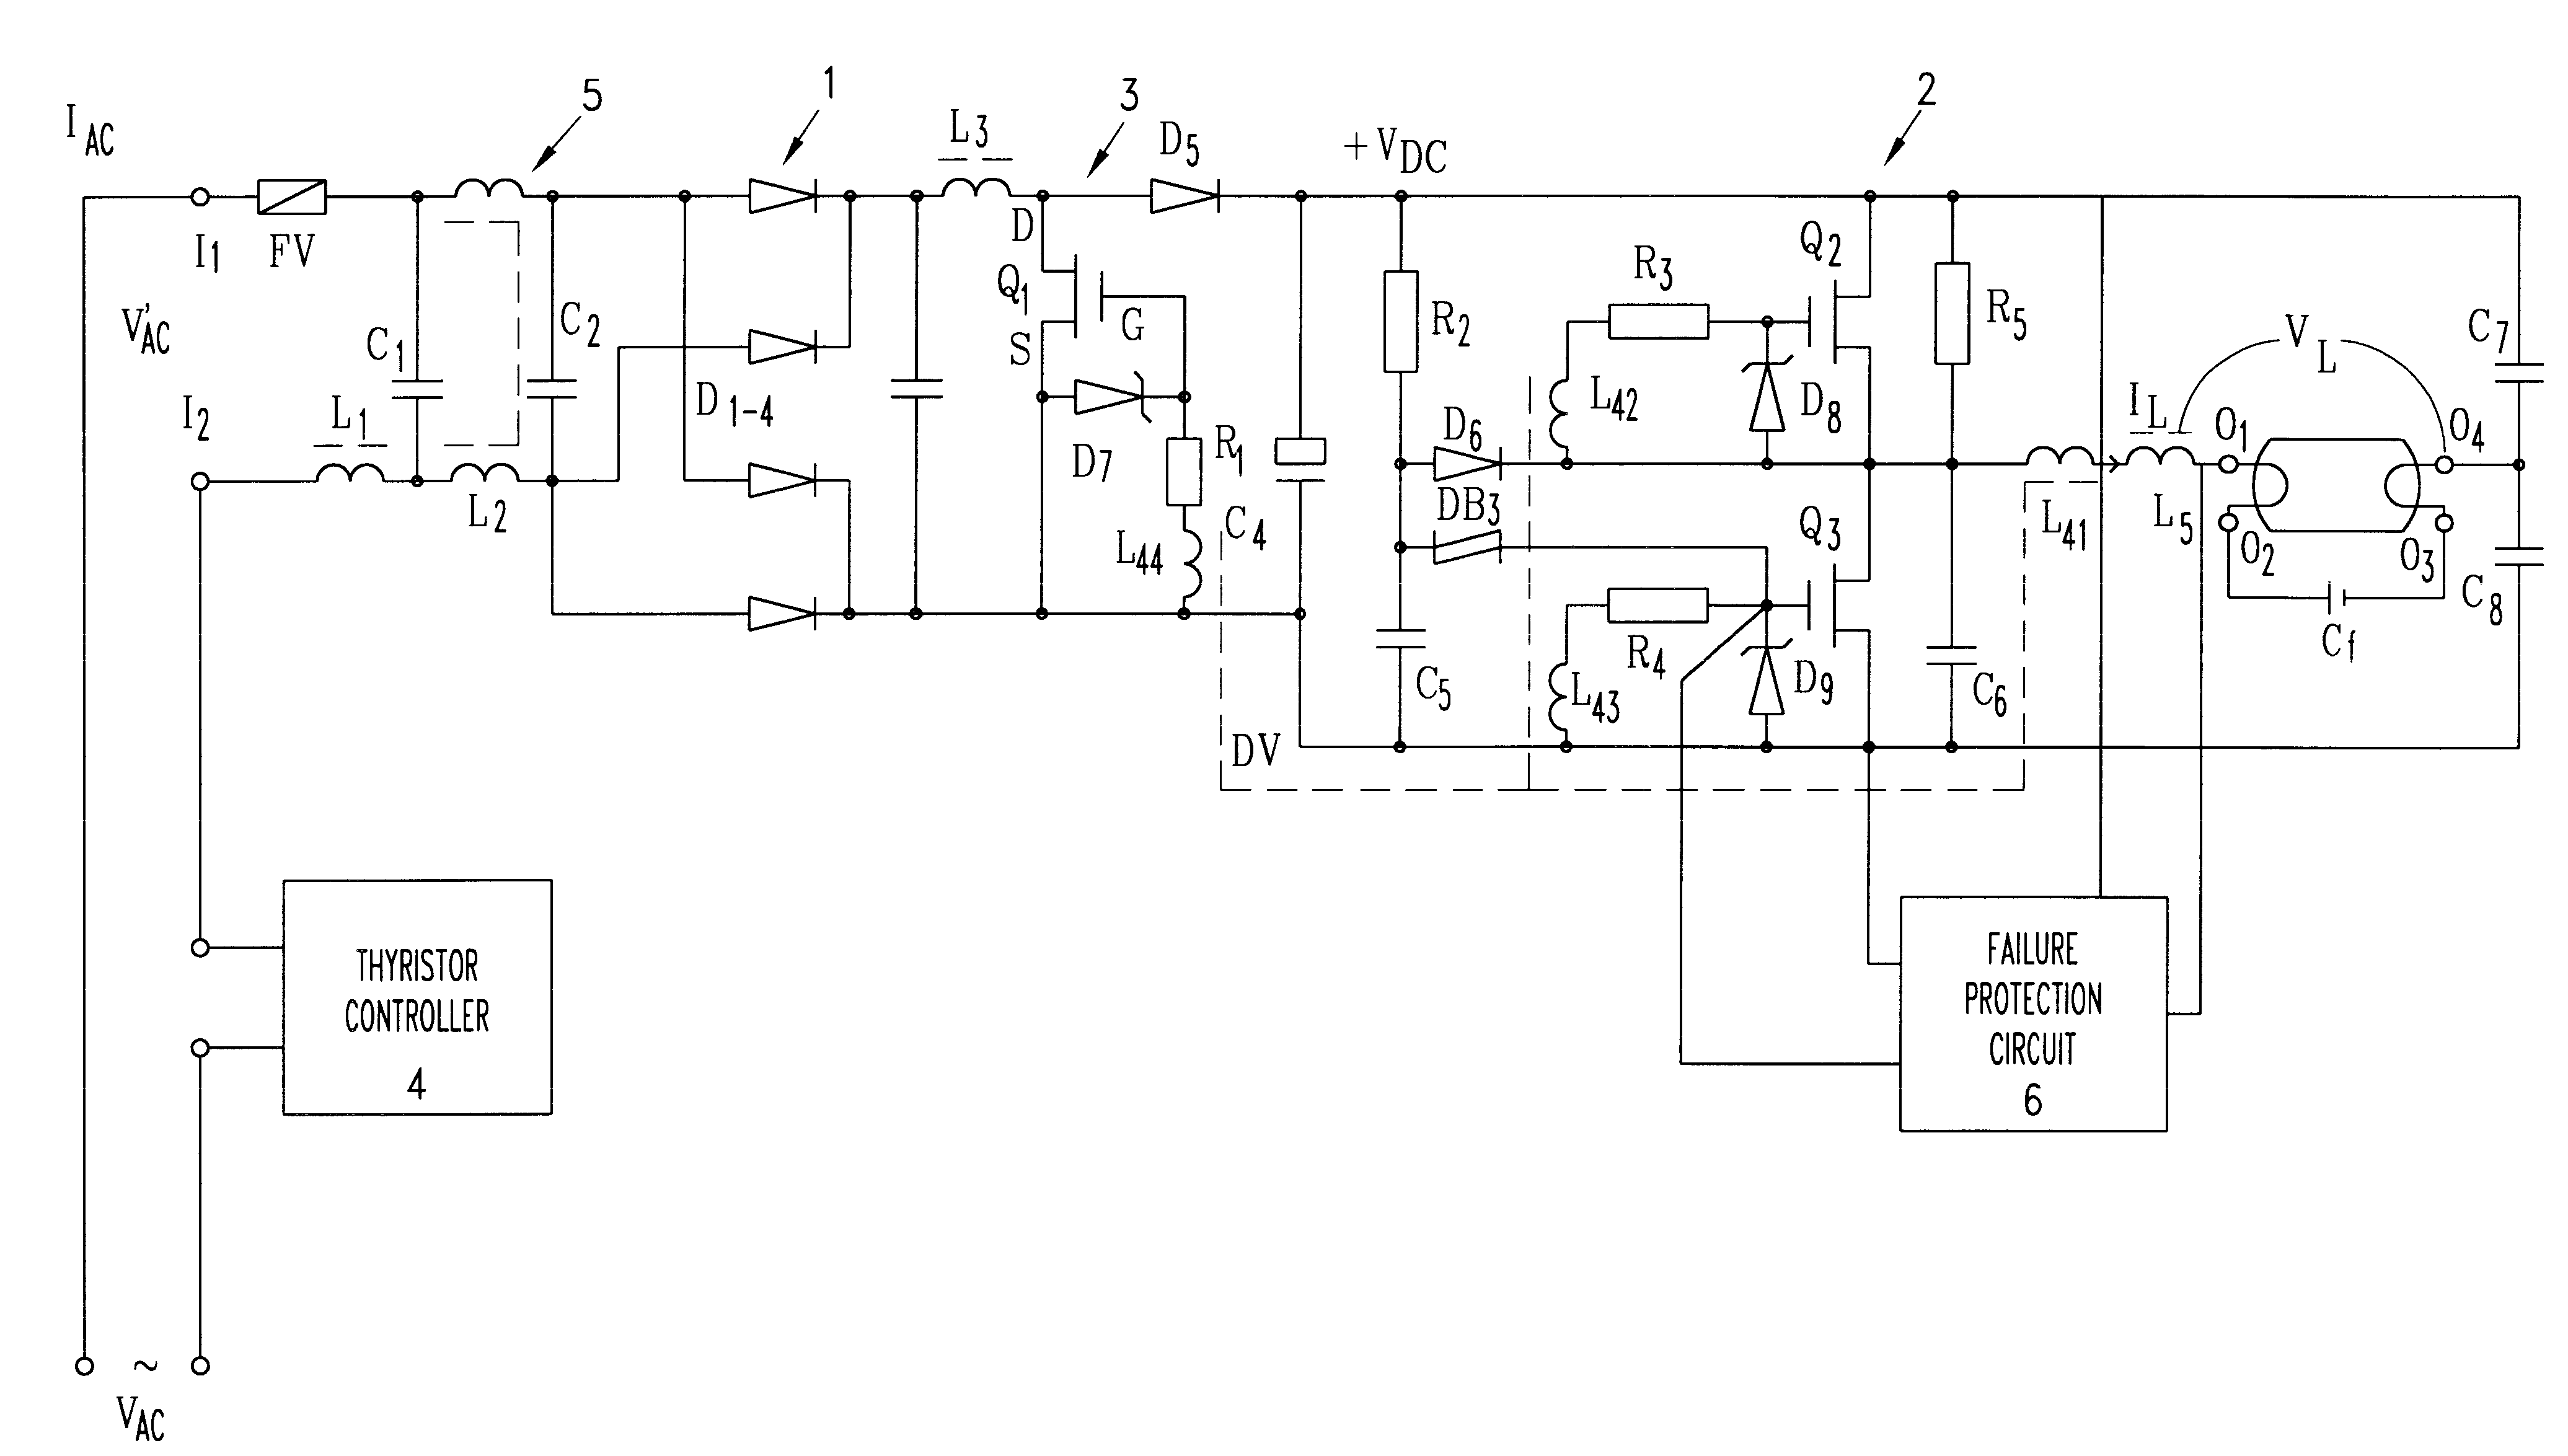 Patent Us6407511 Electronic Ballast Suitable For Lighting Control Dimmable Circuit Dimming Feature Included Drawing